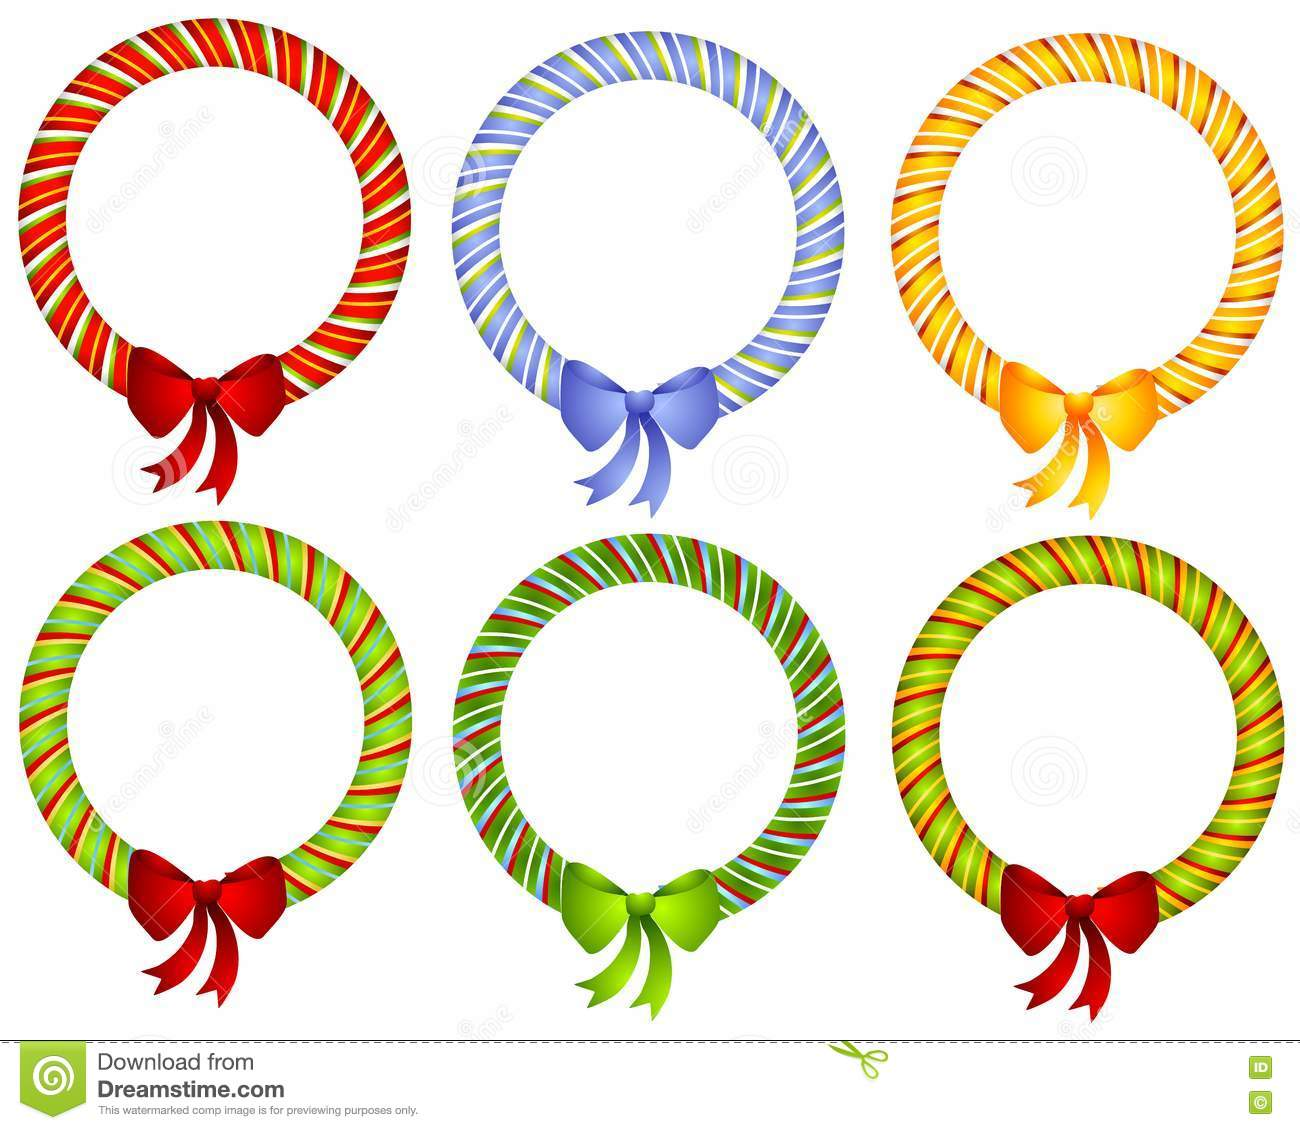 Candy Cane Wreath Bow Frames Picture Image